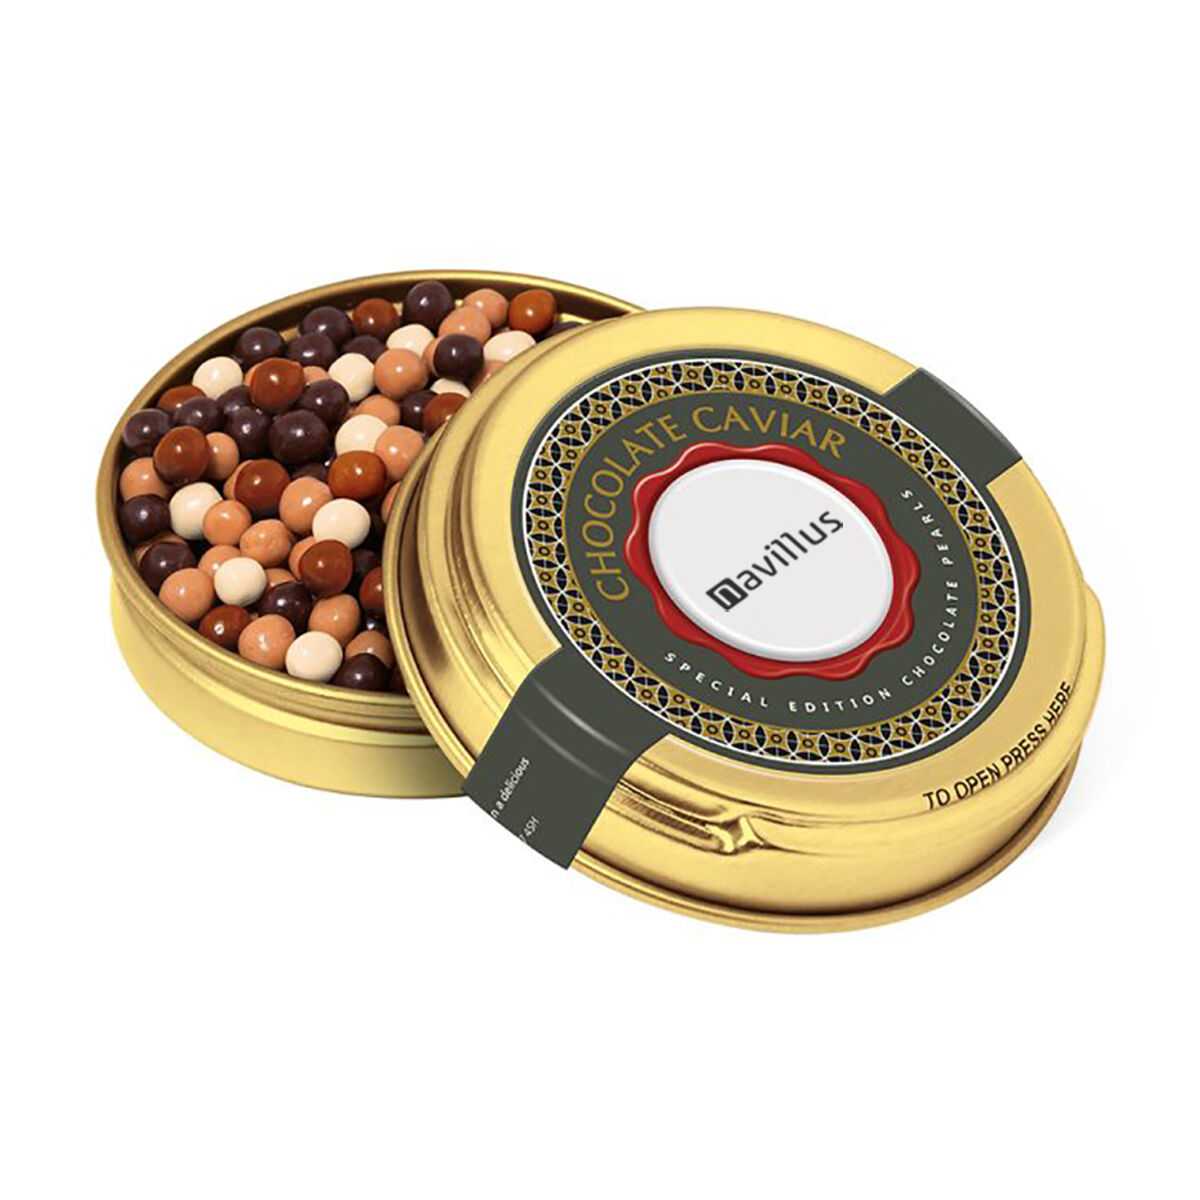 Chocolate Pearls in Caviar Tins